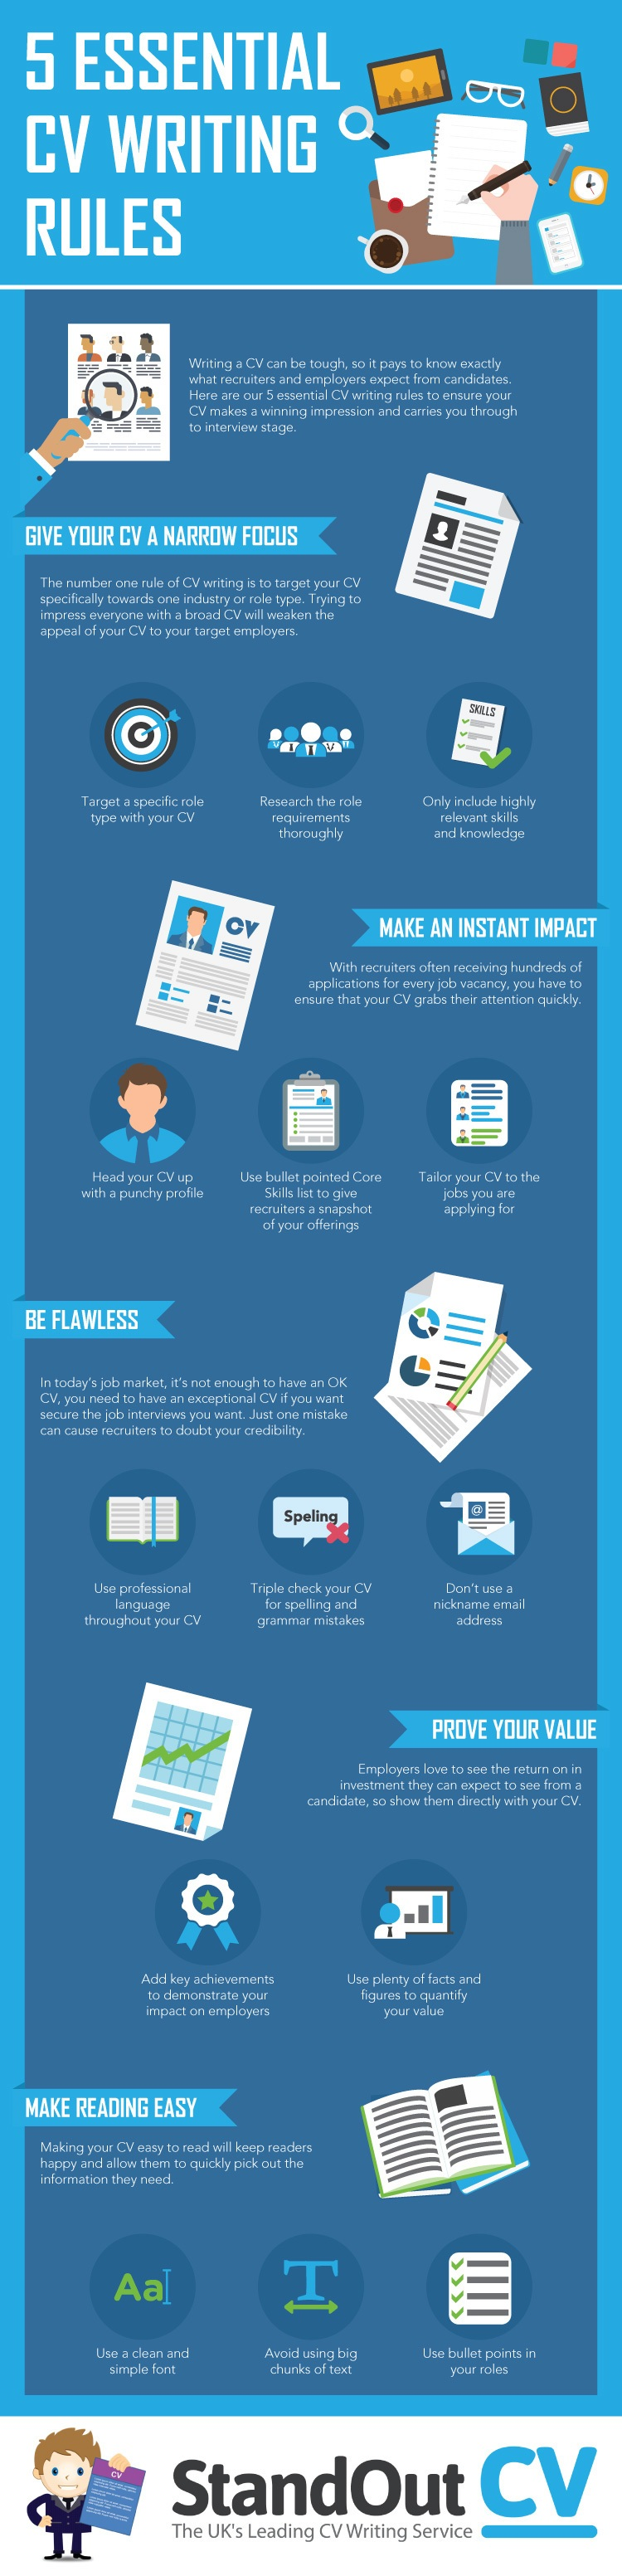 5 essential cv writing rules infographic